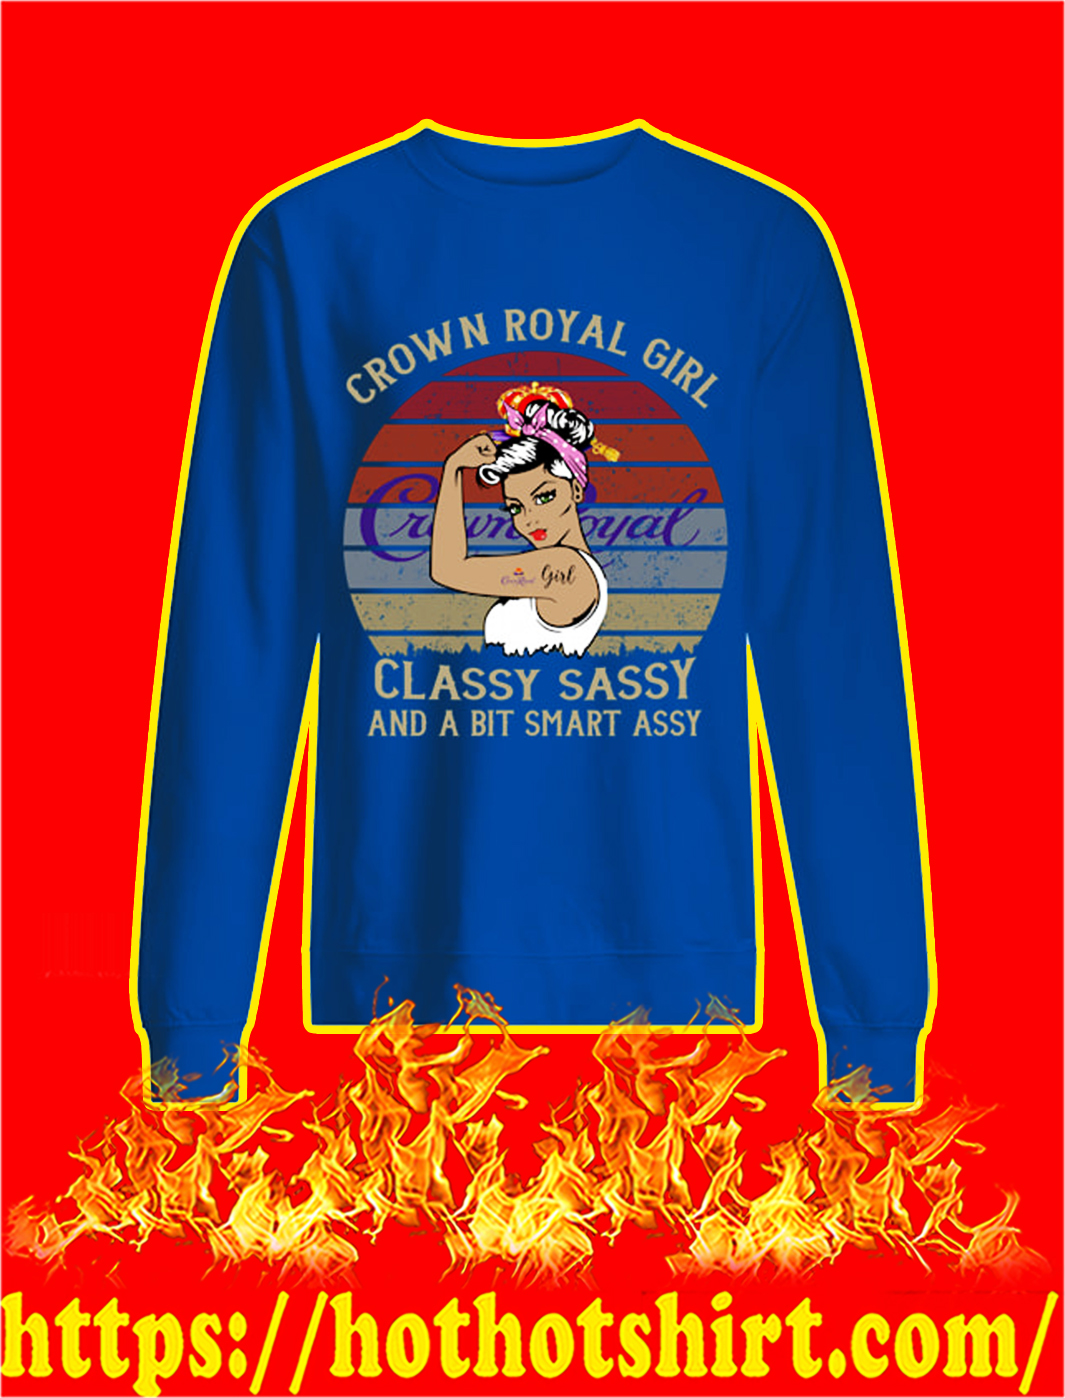 Crown royal girl classy sassy and a bit smart assy sweatshirt